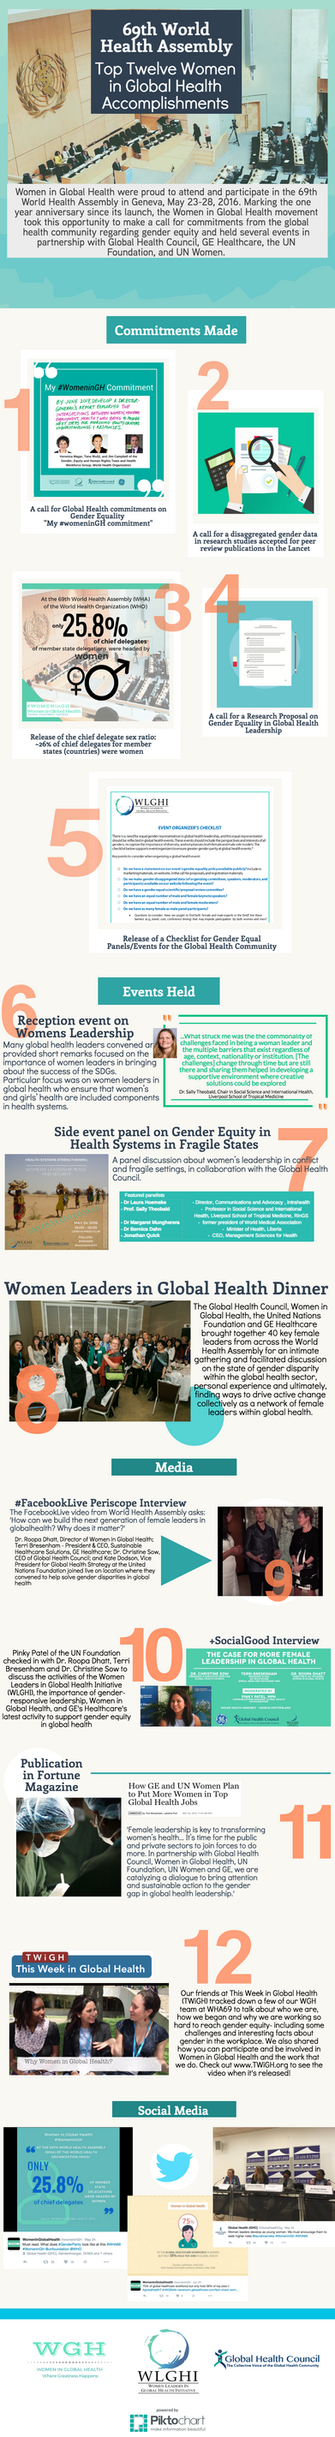 Top 12 Accomplishments: Women in Global Health at the 69th World Health Assembly